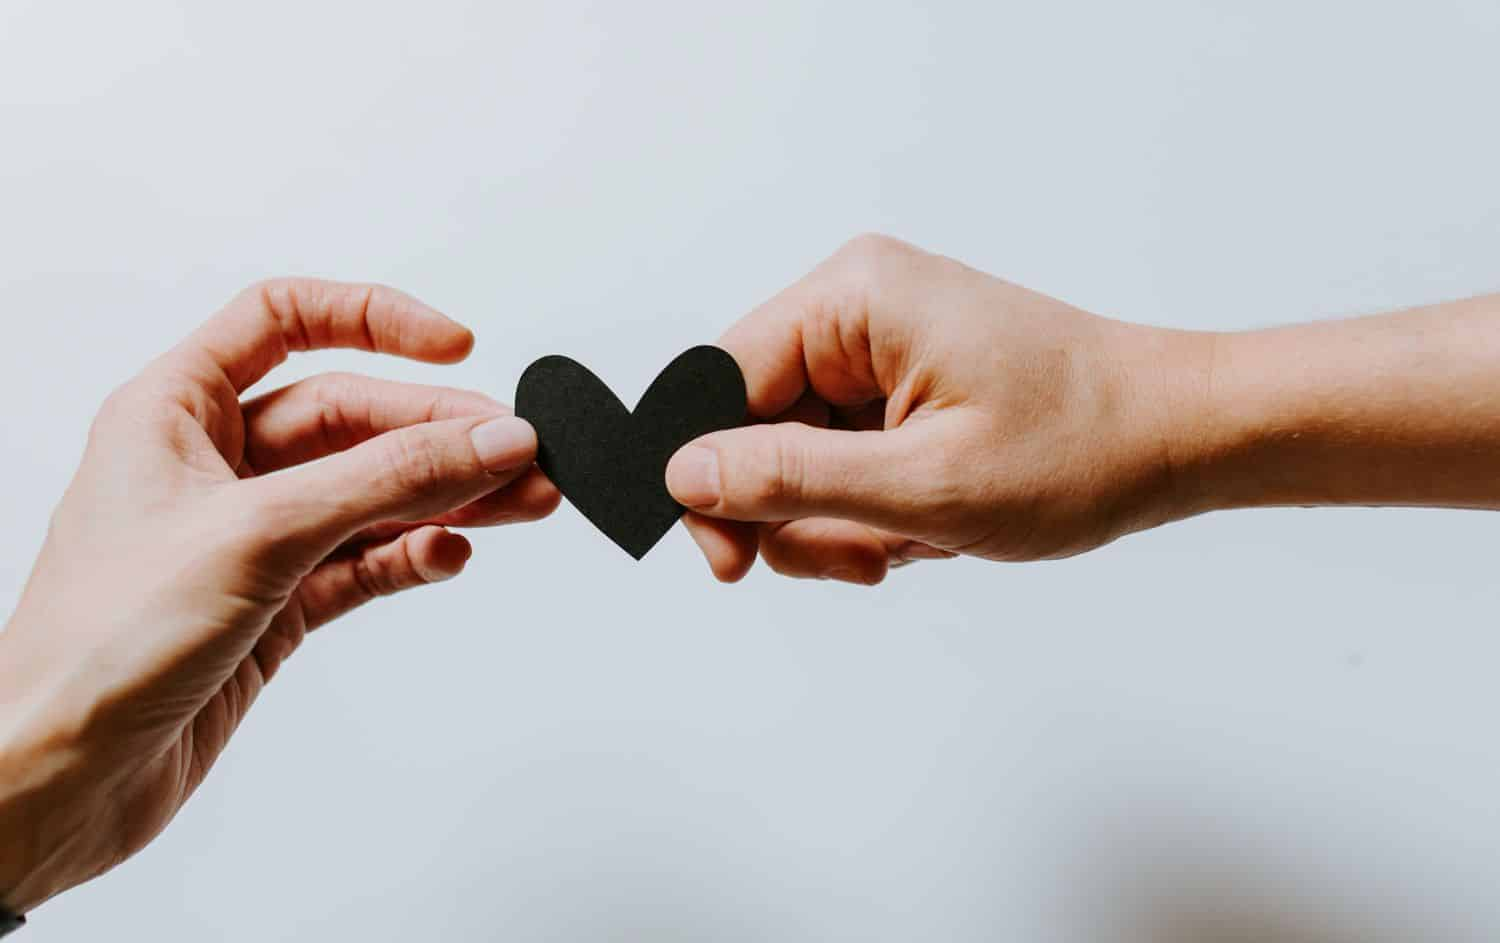 A person hands a paper heart to another person in front of a white backdrop.